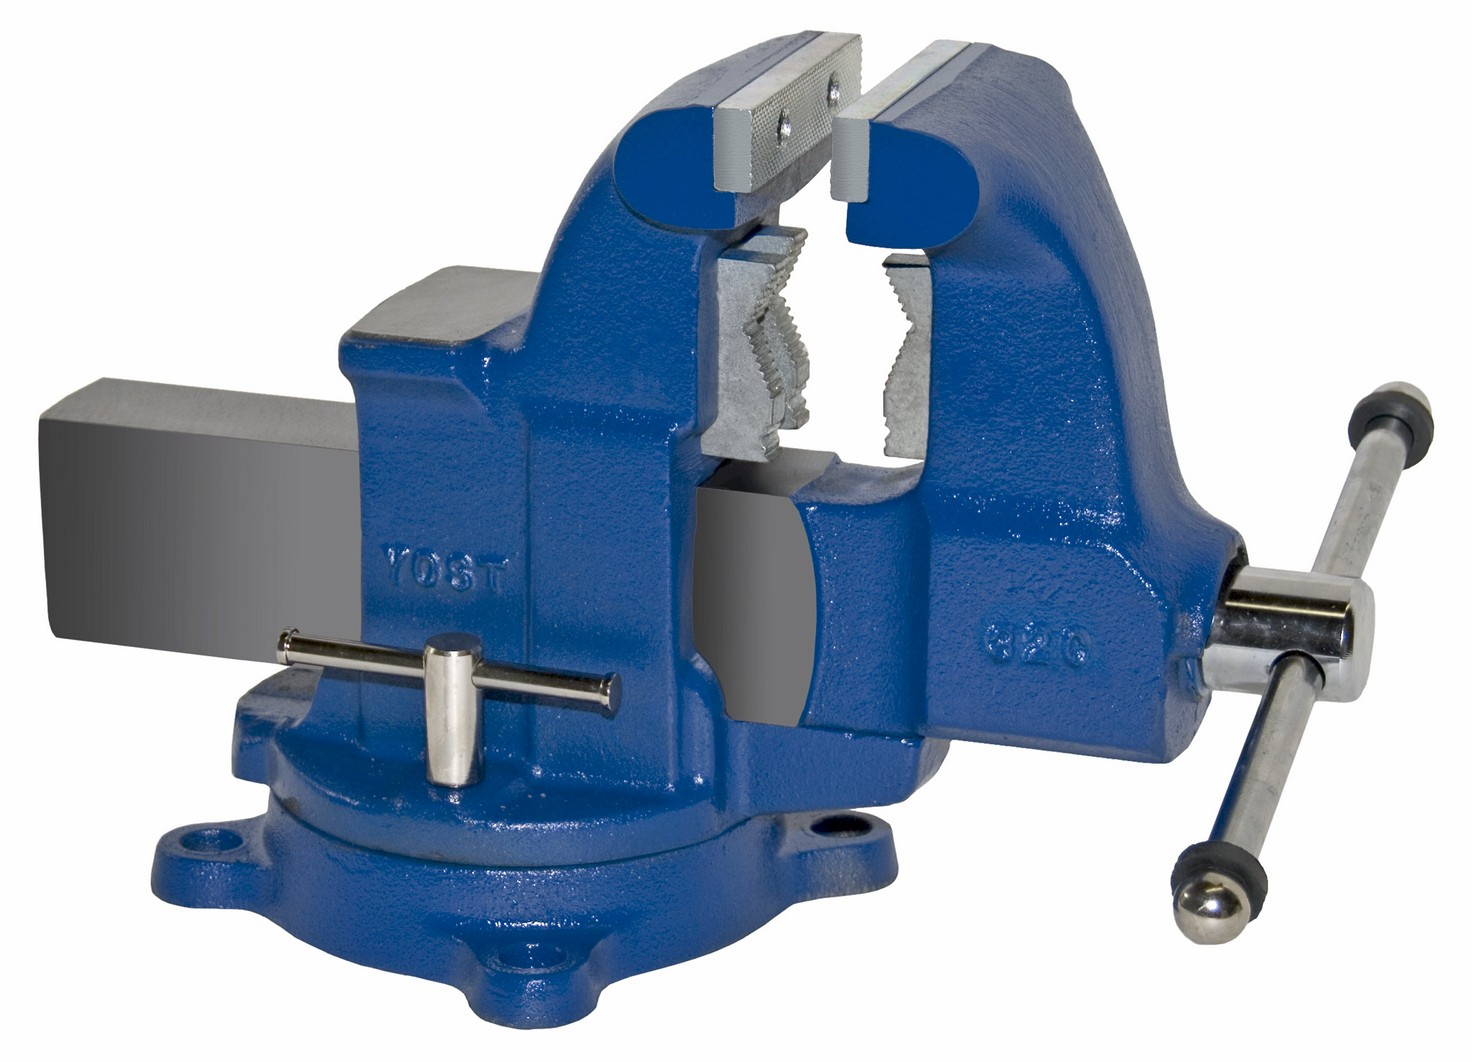 Yost Vises 32c 4 1 2 Heavy Duty Combination Pipe Bench Vise Swivel Base